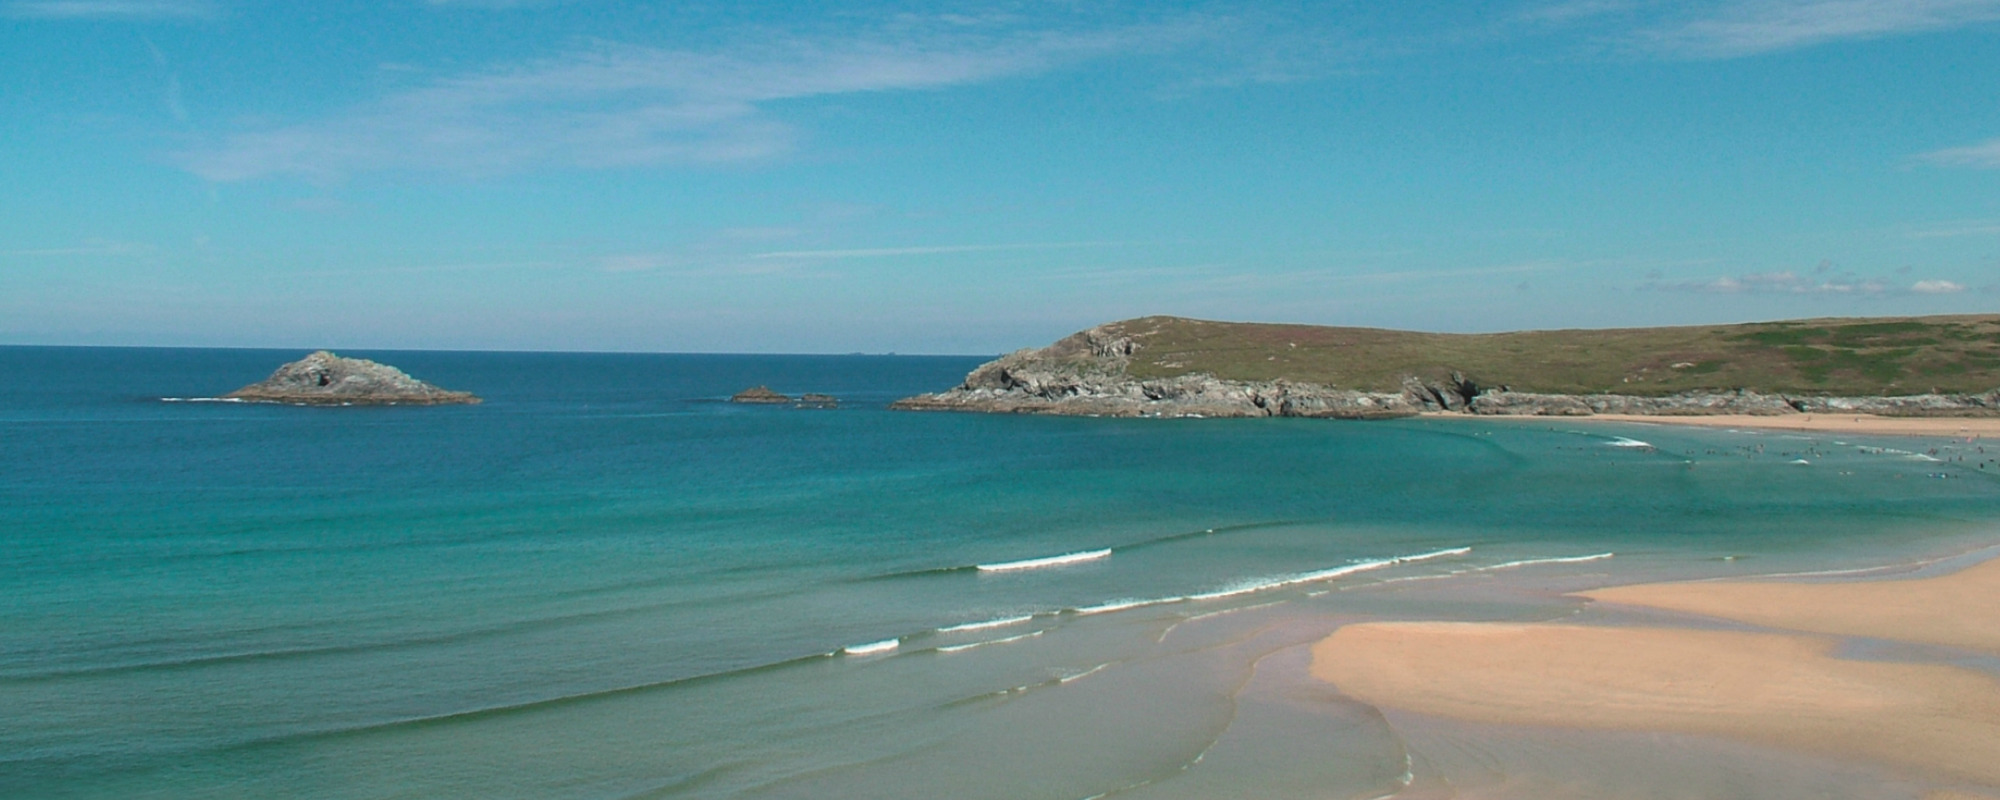 Crantock Bay Apartemts beach view - Welcome to Crantock Bay